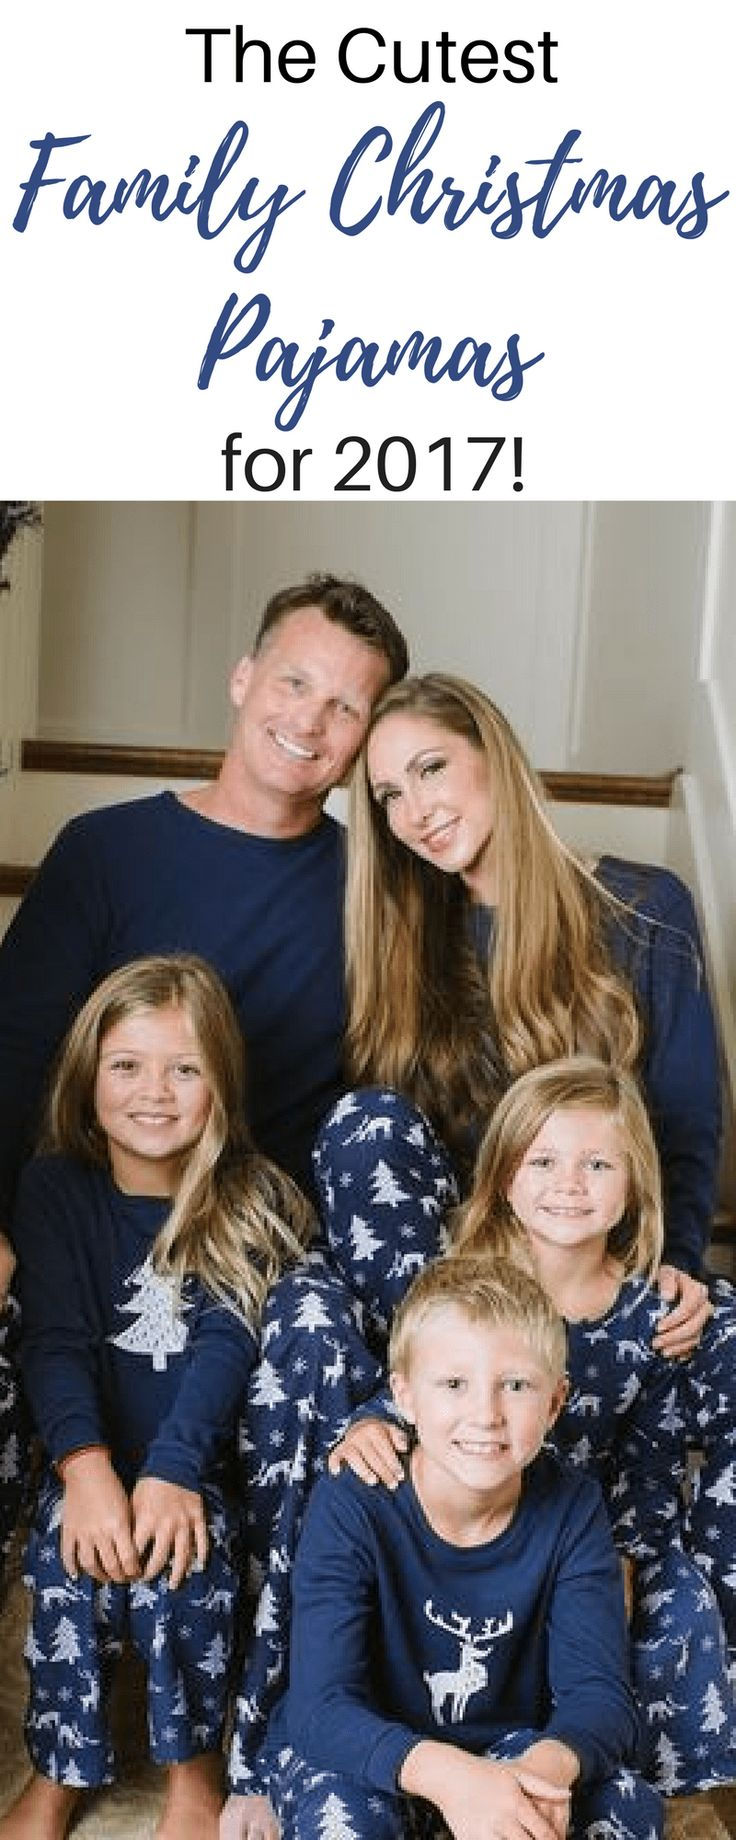 A Round up post of the cutest matching Christmas pajamas for your family! Shop the links in the post.